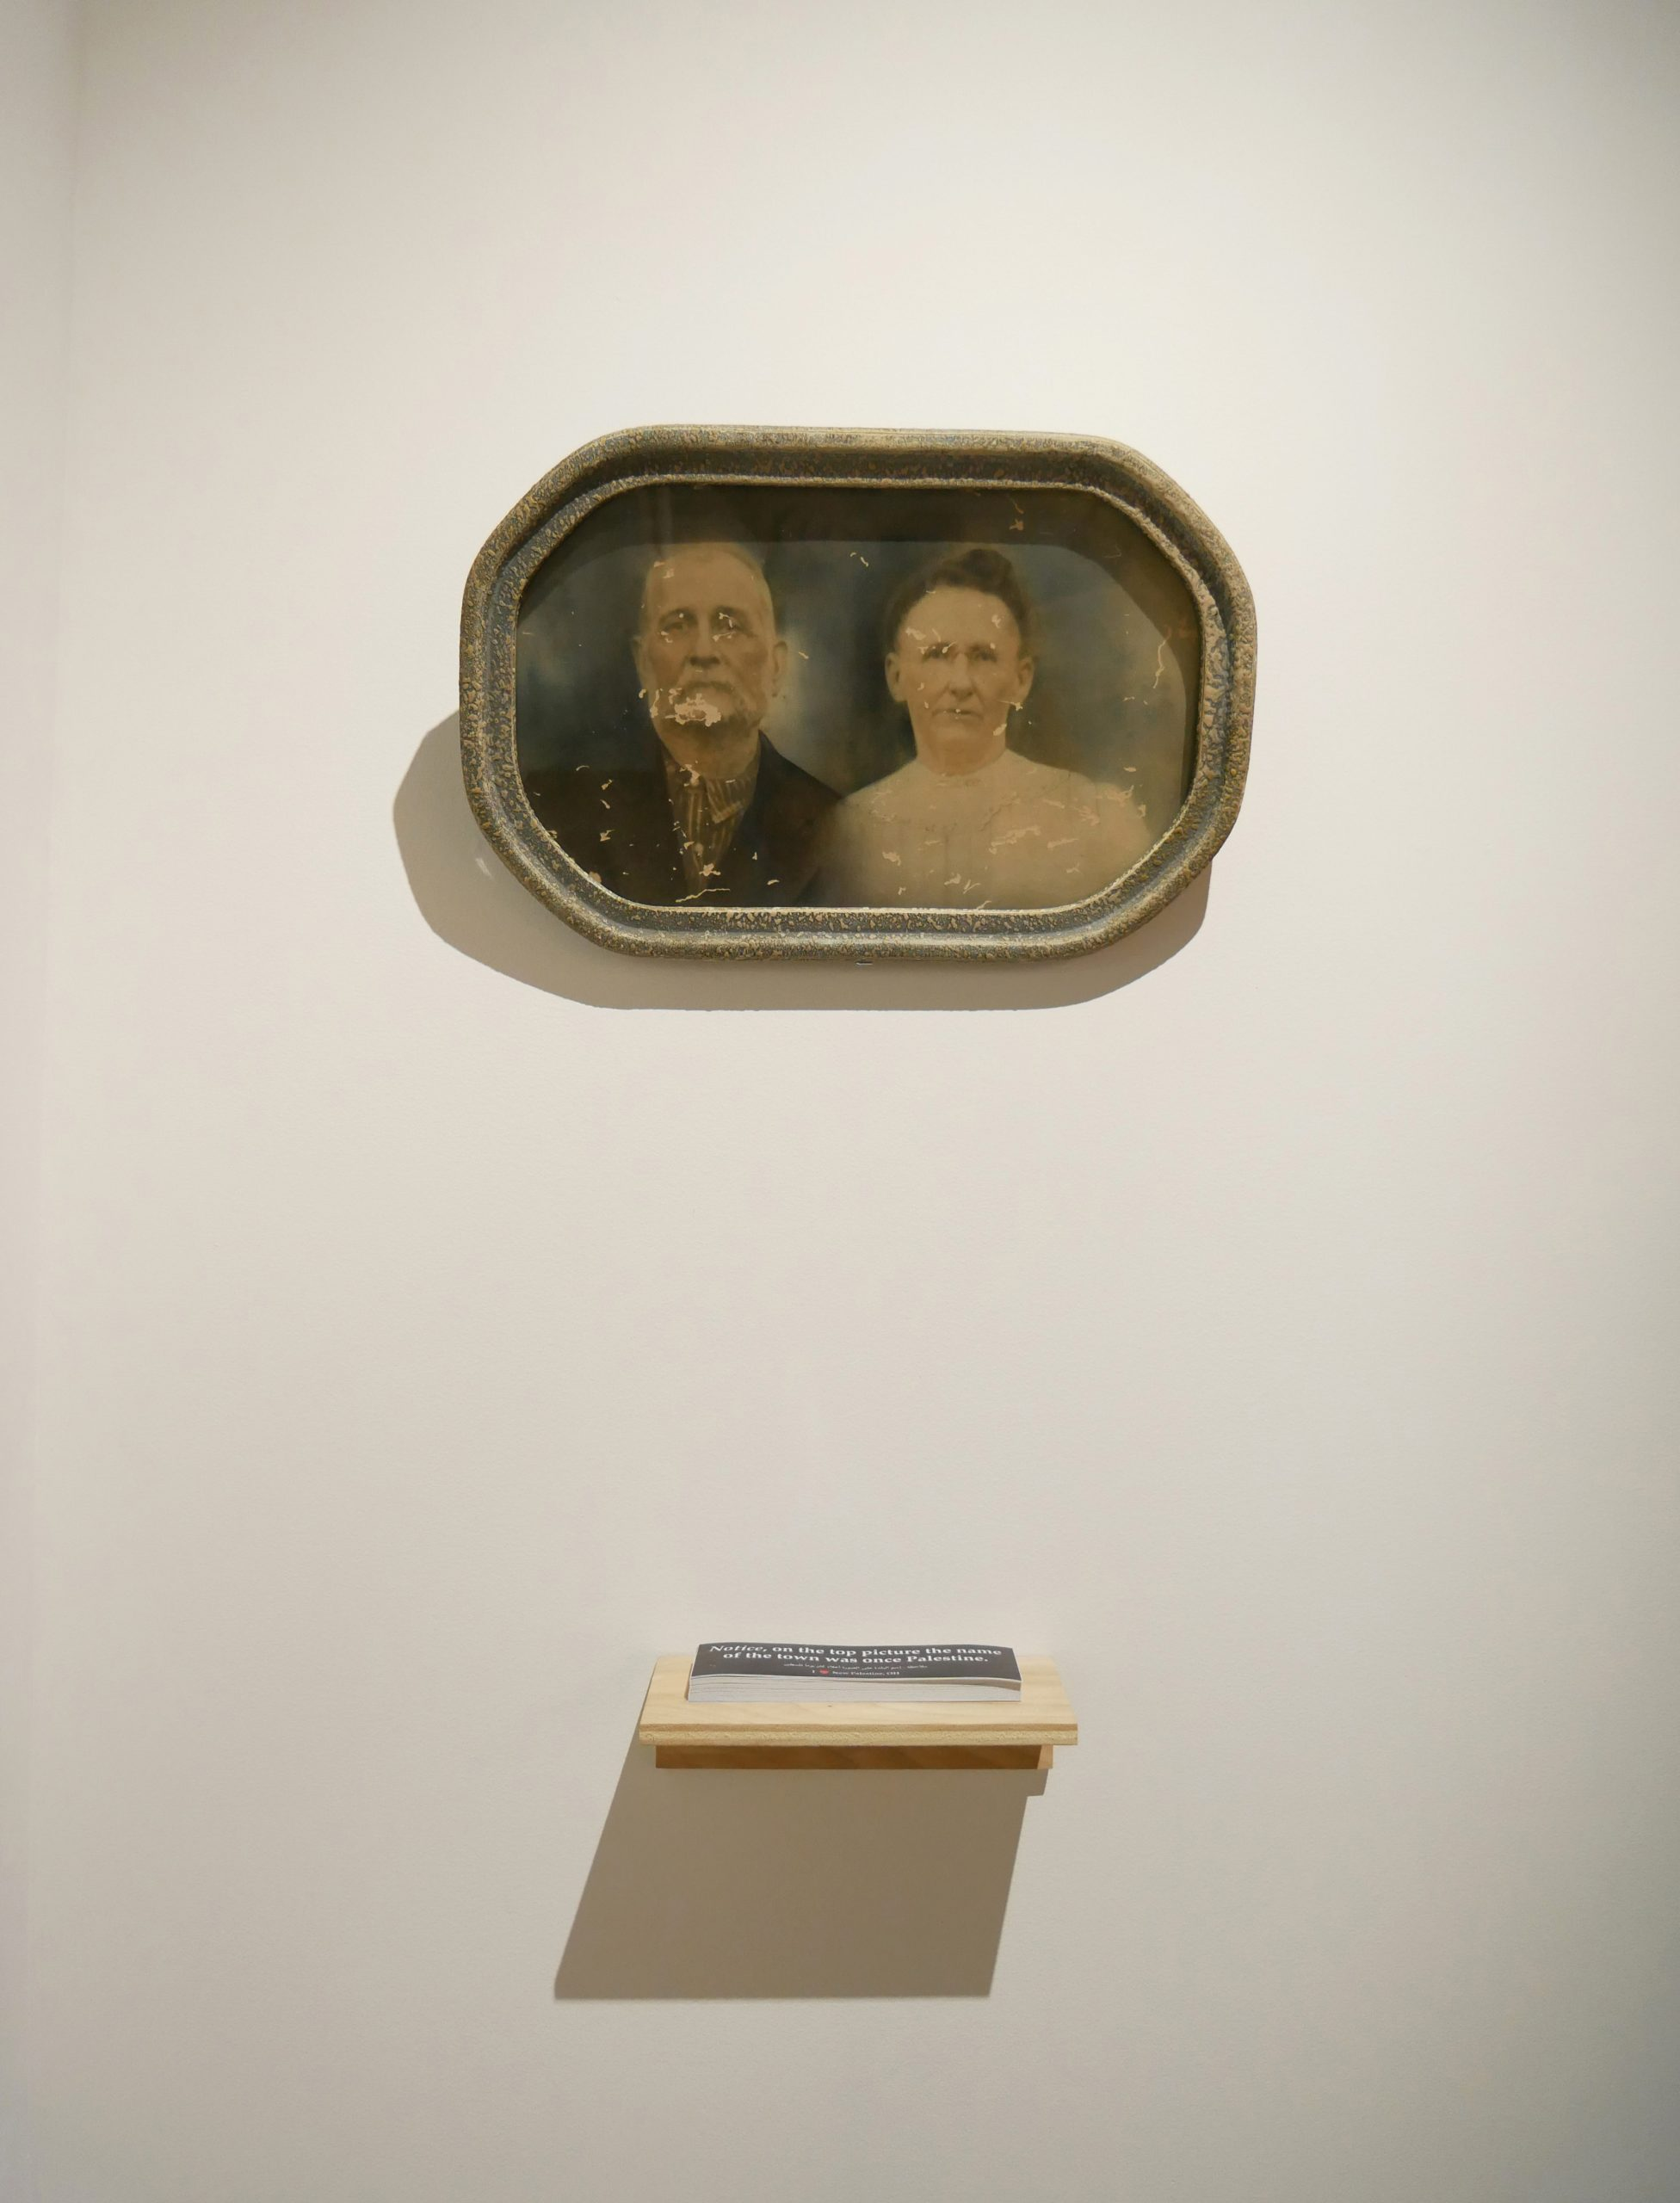 Lost Old Couple circa 1900, found at 25 E. Mill St. New Palestine, IN in a trash can by Garth Castleman, around 2010, found object.  Billboard in New Palestine, IN, bumper sticker, takeaway, Michigan State University Union Art Gallery 2019.